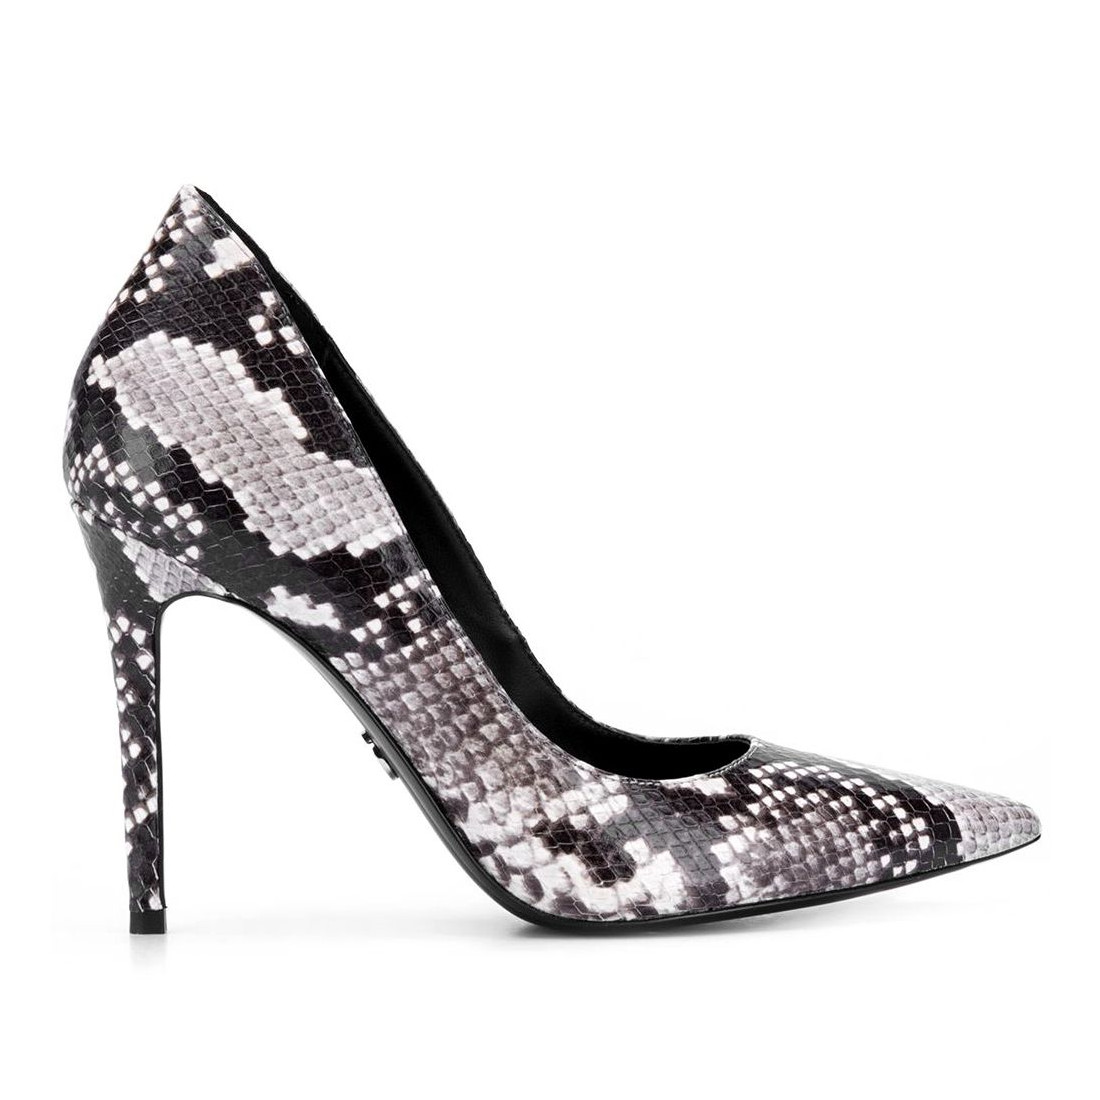 pumps woman michael kors 40t0kehp1e002 7519